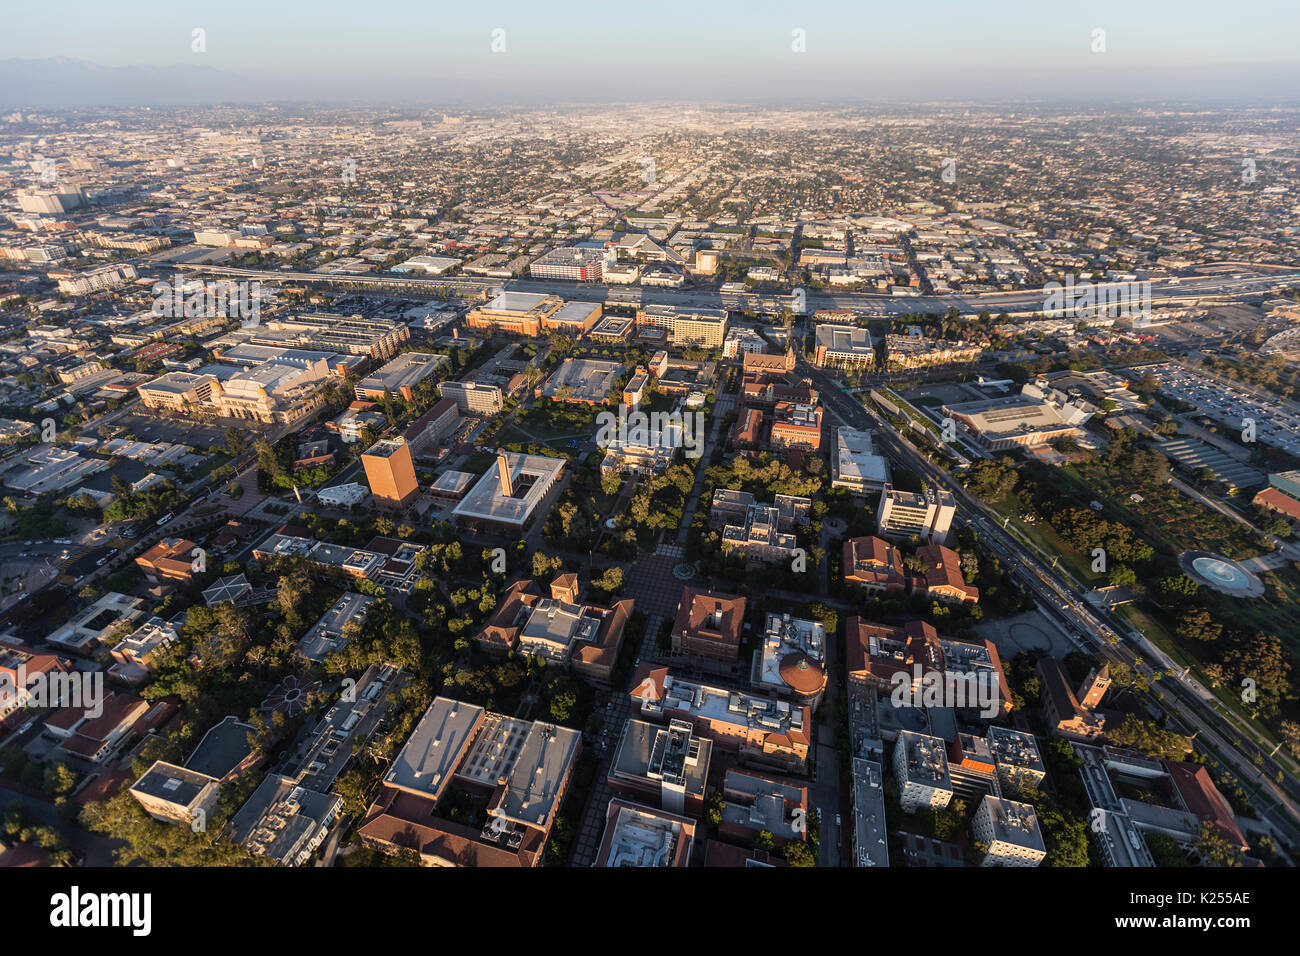 Aerial view of the University of Southern California campus and neighborhoods south of downtown Los Angeles. - Stock Image